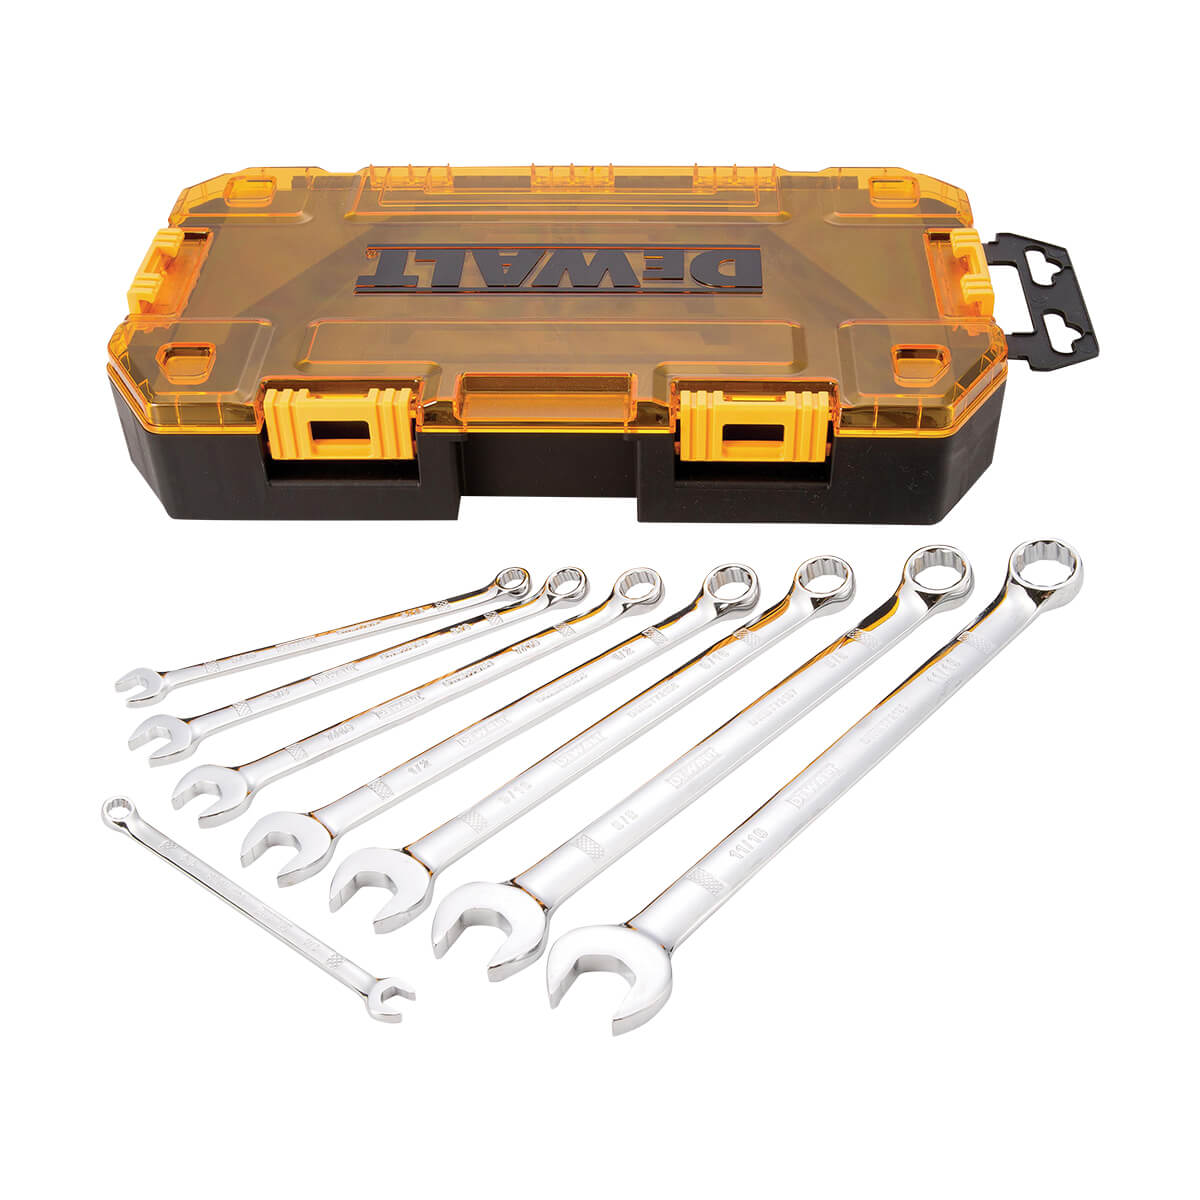 Combination Wrench Set - Imperial - 8 Piece